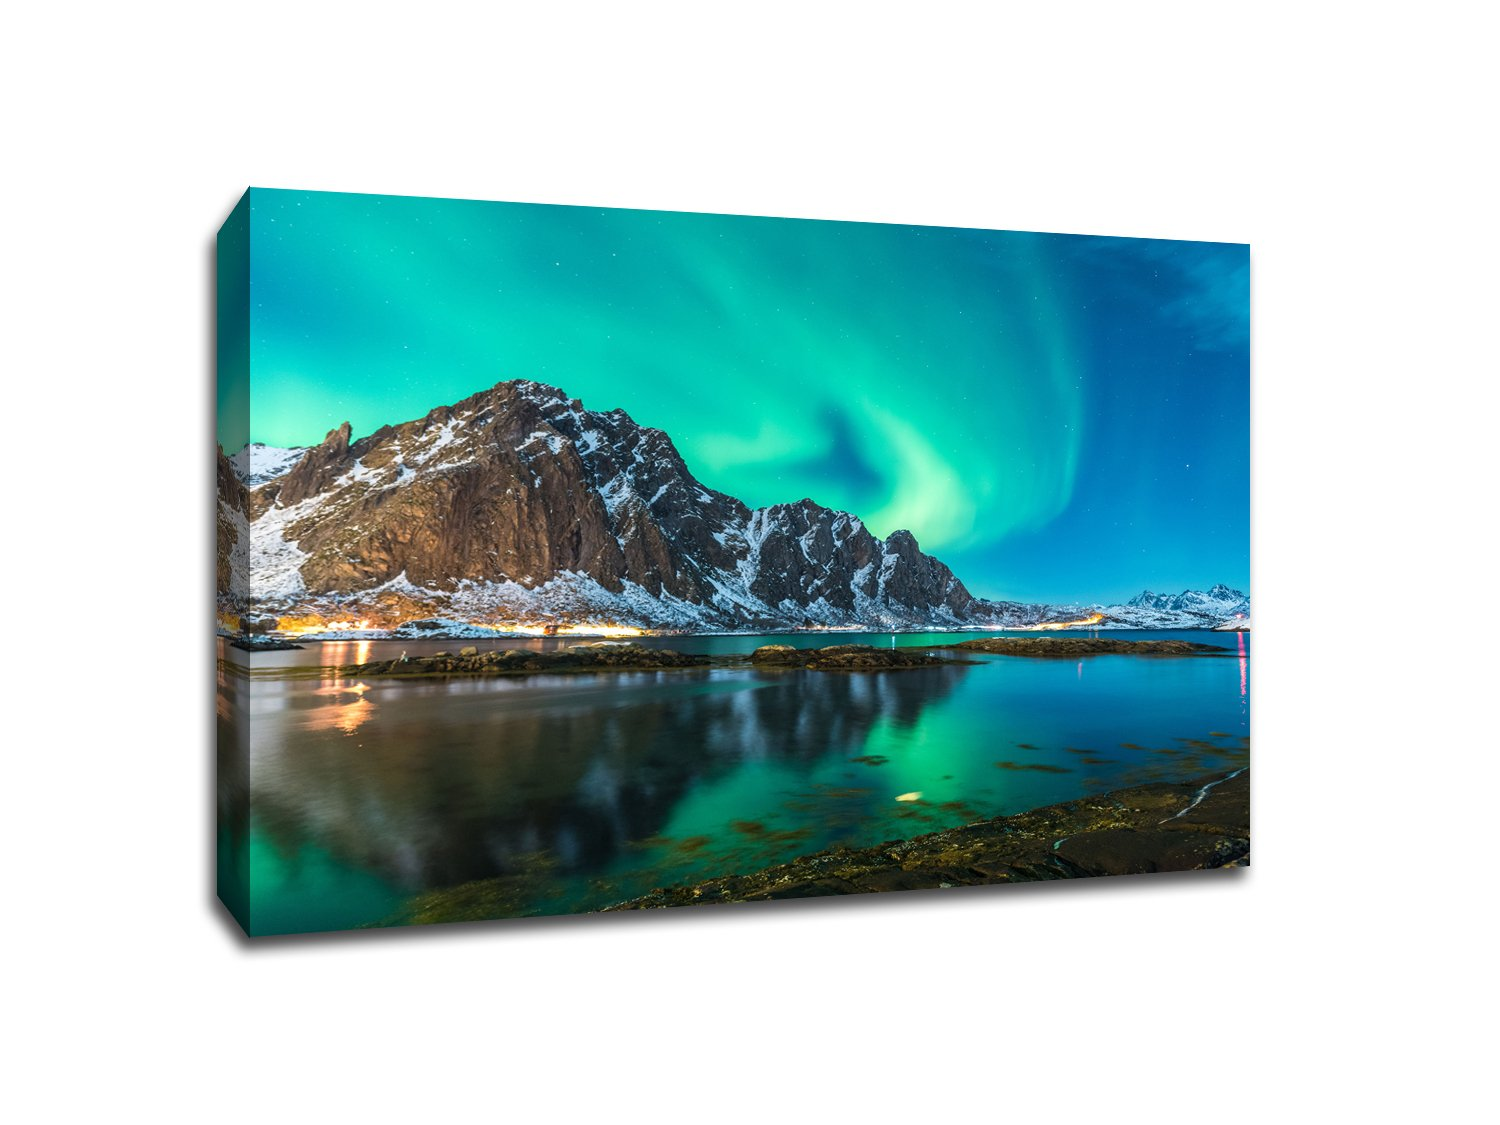 Northern Lights Lake - Water Landscapes - 48x36 Gallery Wrapped Canvas Wall Art